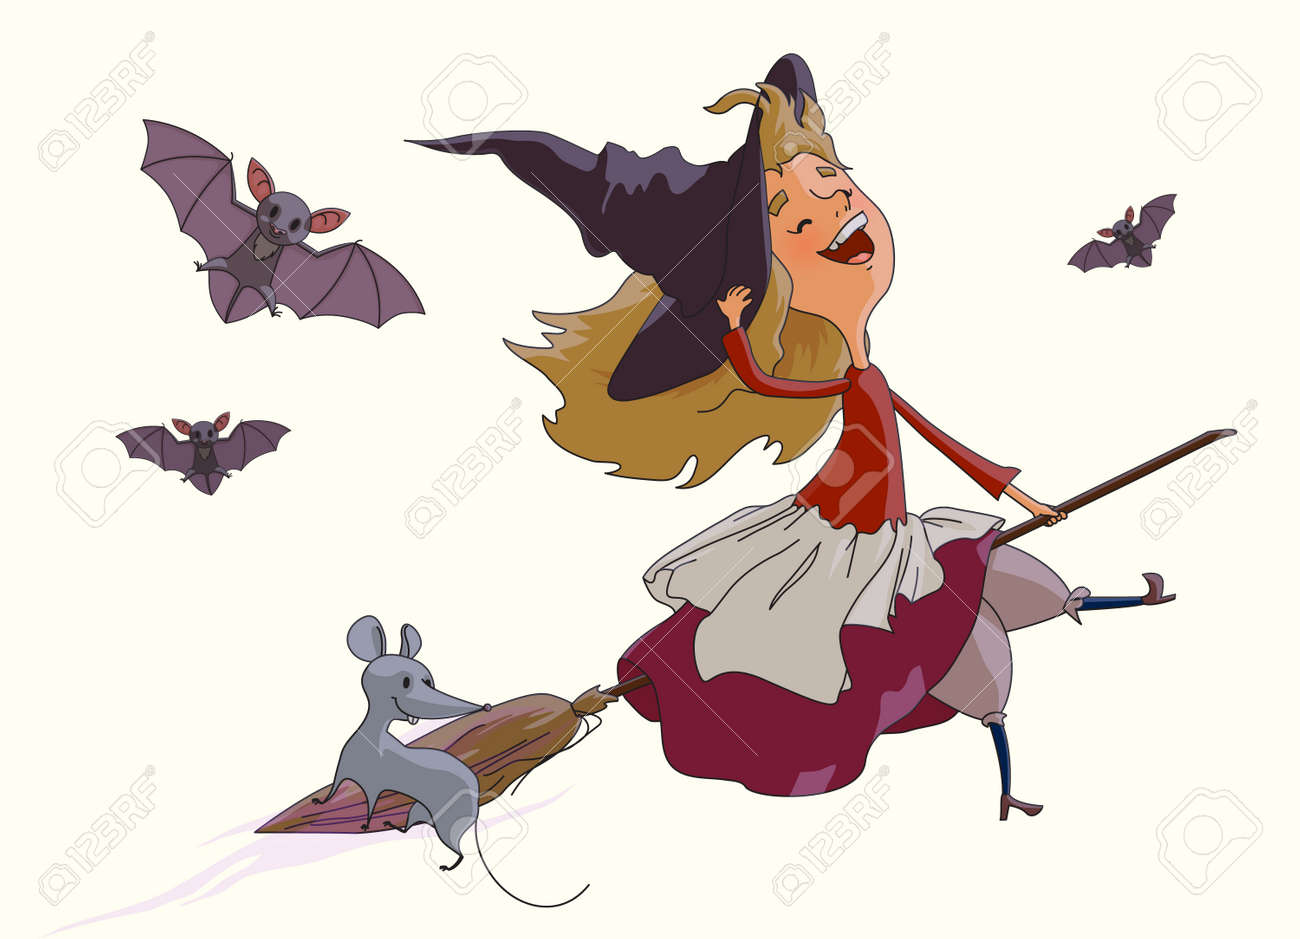 Cheerful young witch flying on a broom with a fun mouse, accompanied